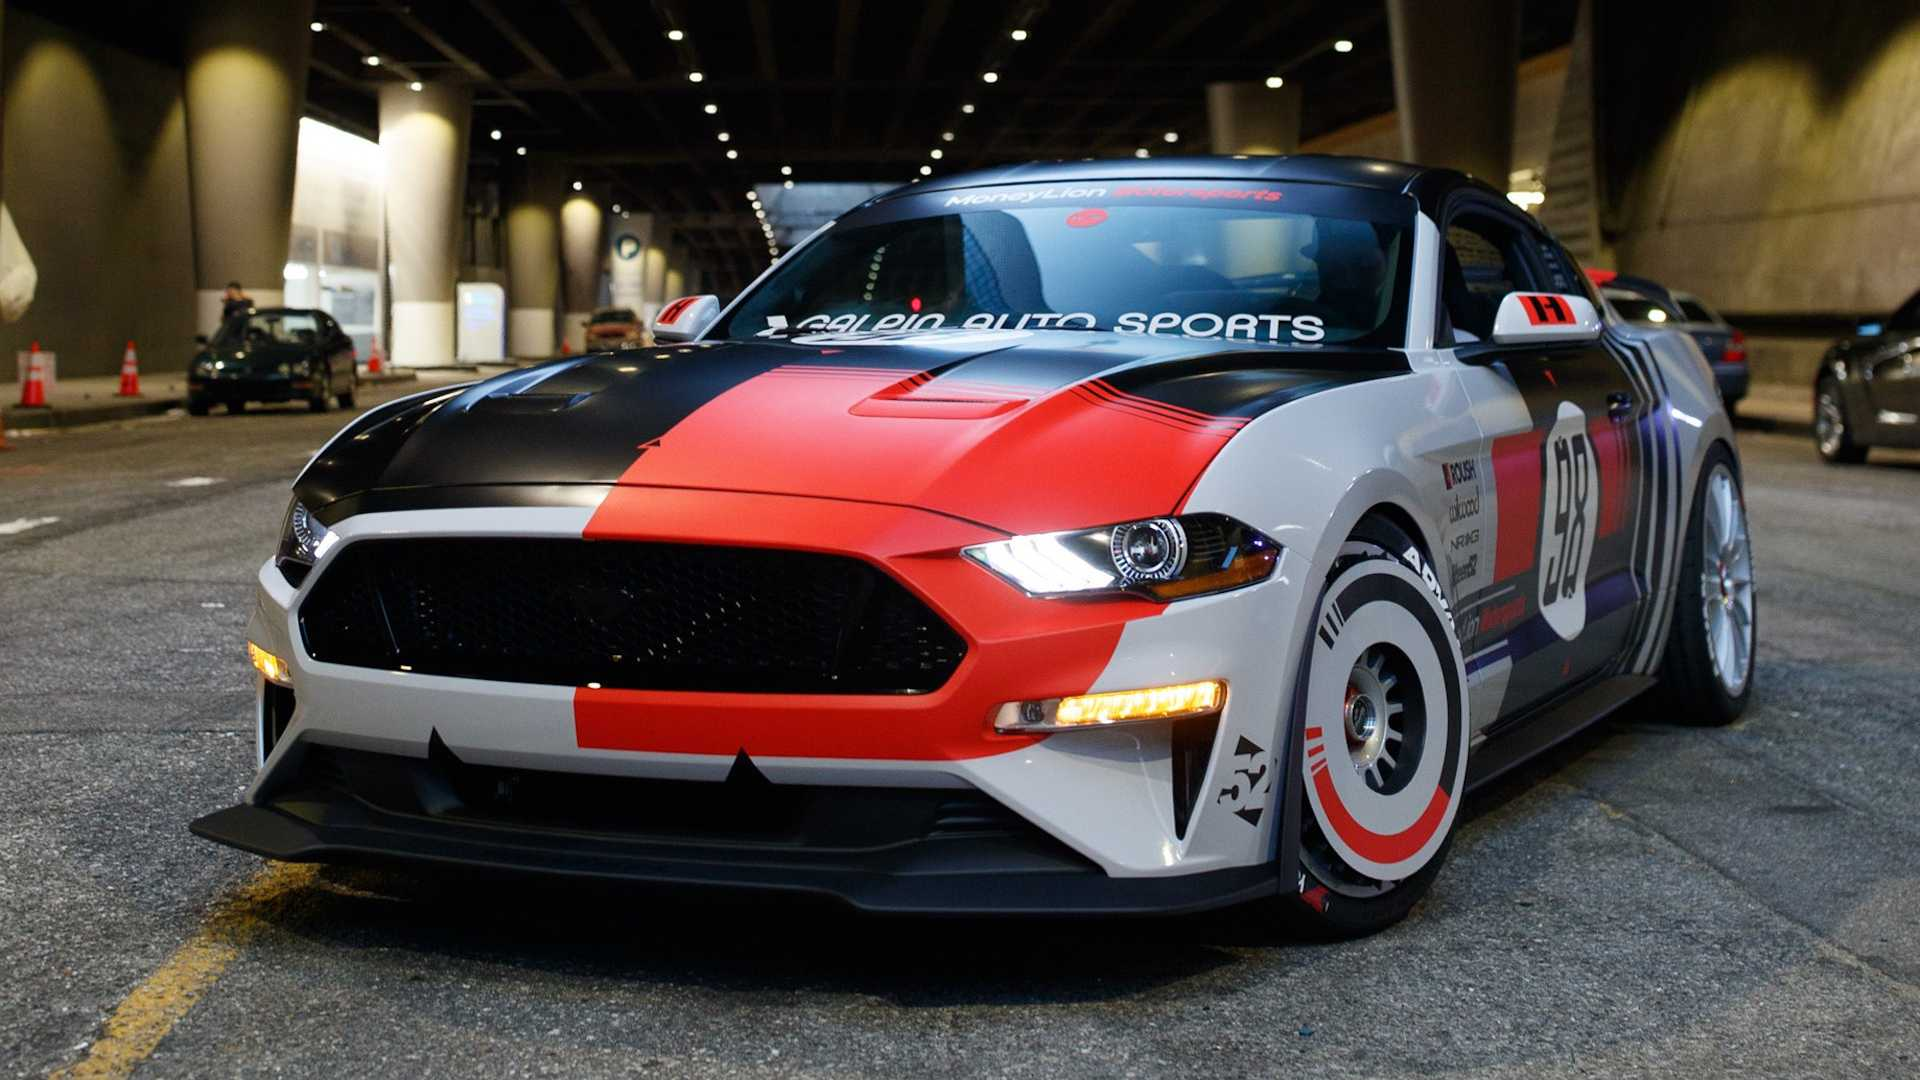 NASCAR racing driver Ryan Blaney, designer Khyzyl Saleem and photographer Larry Chen have unveiled the result of their cooperation: a unique retro-styled Ford Mustang that will be exhibited at the upcoming SEMA Show in Las-Vegas.